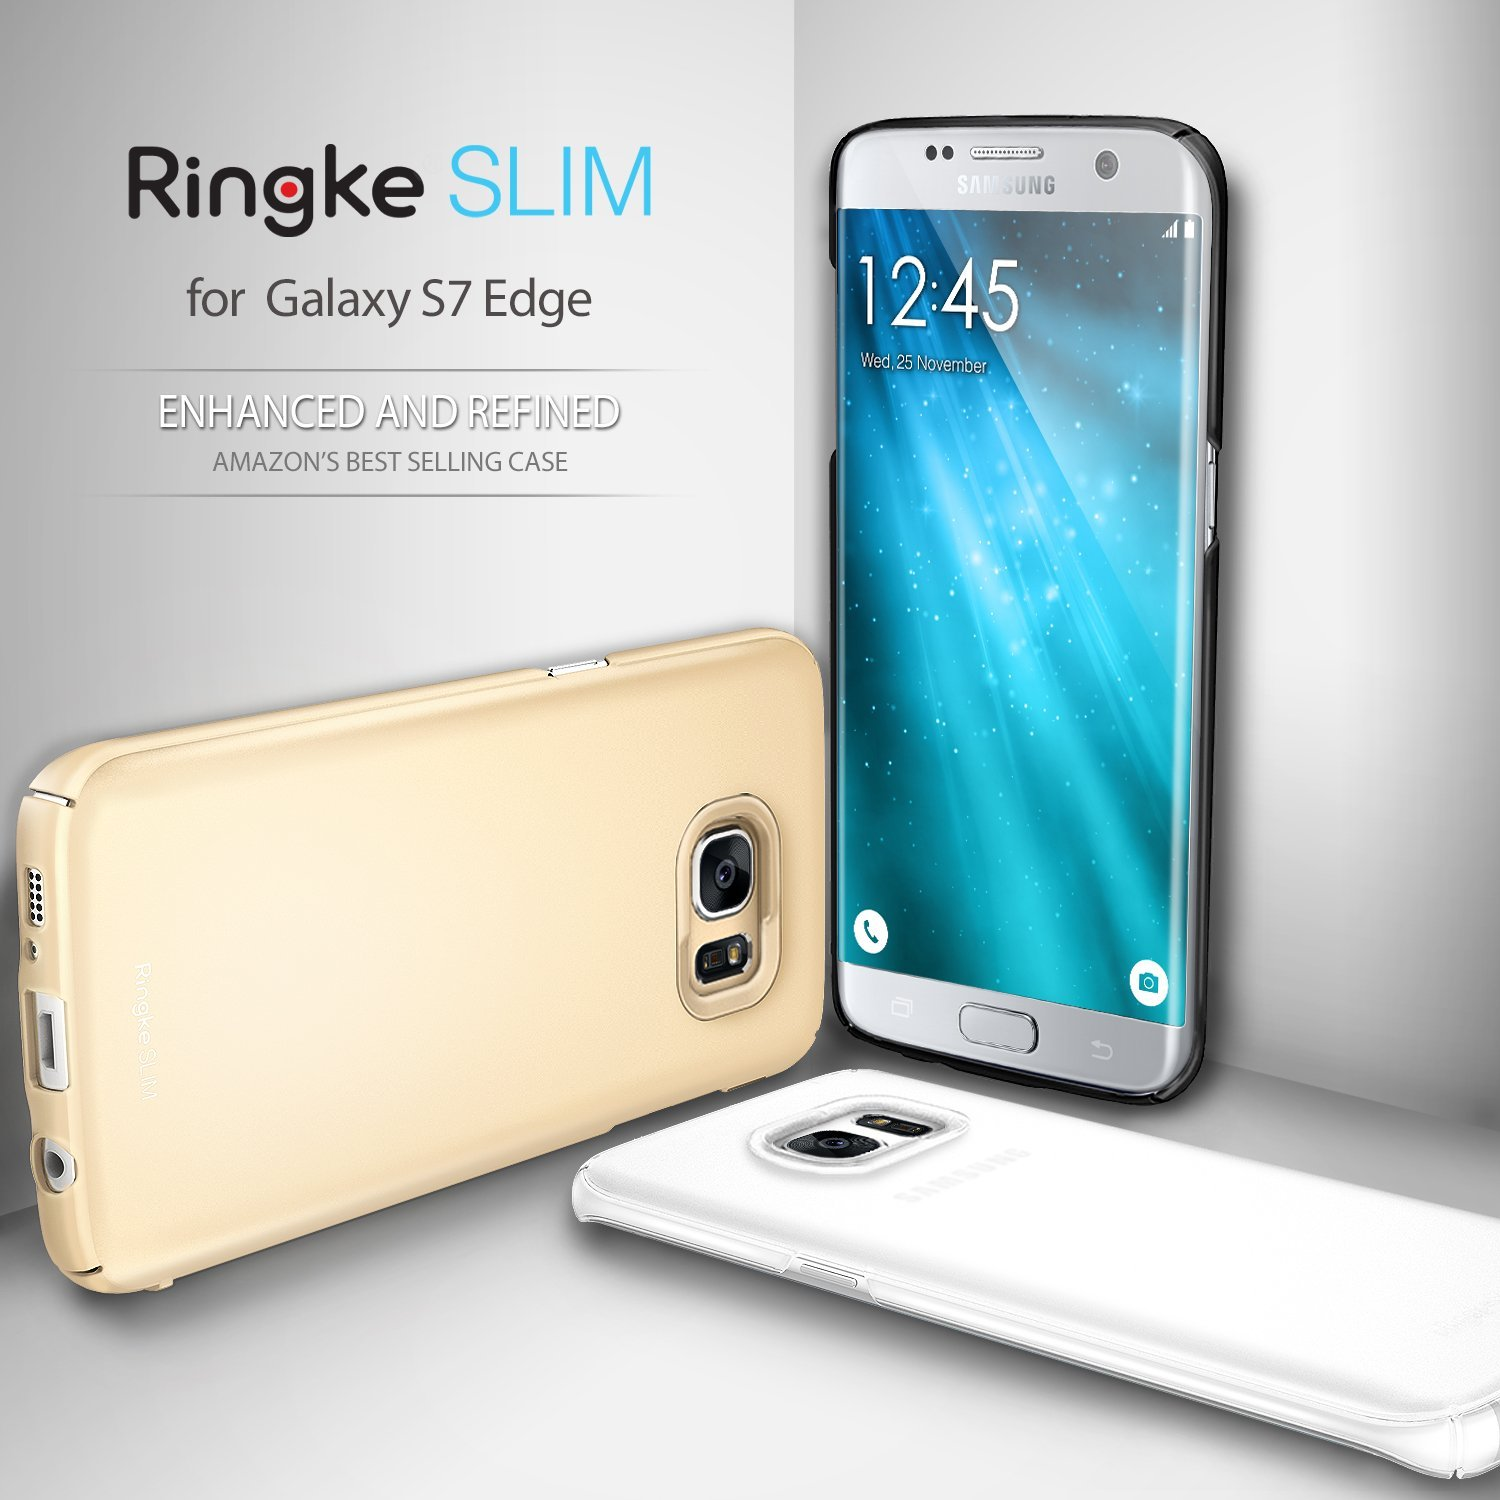 Samsung Galaxy S7 Edge Ringke Slimroyal Gold Snug Fit Ultra Thin Baby Skin Hard Case For Black All Coverage